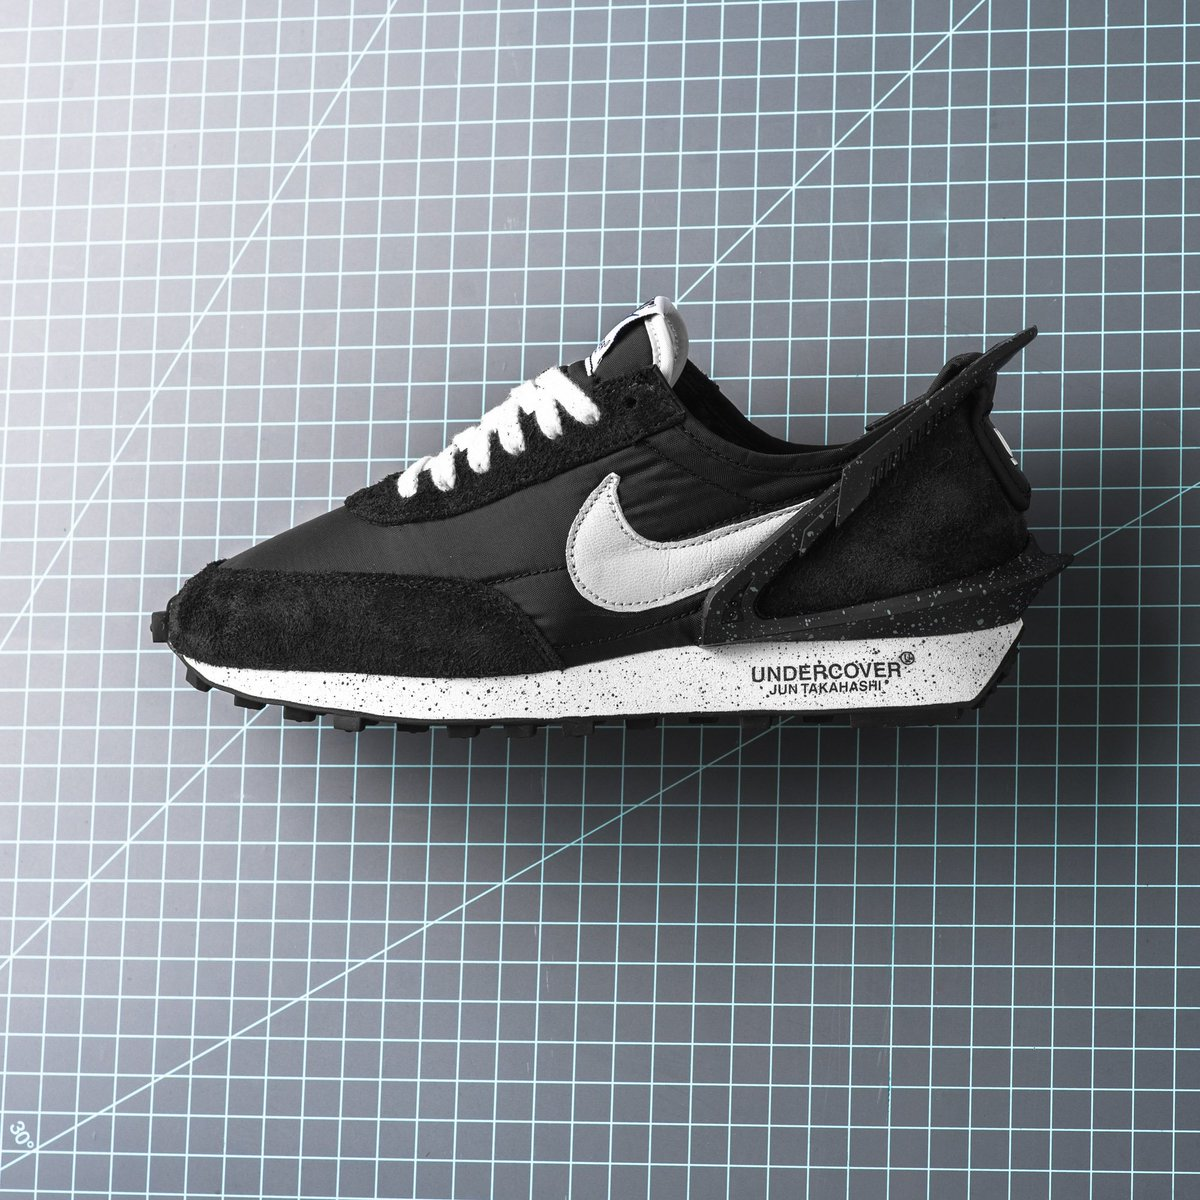 479f6a40eb Now Available :: Undercover x Nike Daybreak - Black :: https:// sneakerpolitics.com/products/undercover-x-nike-daybreak-black  …pic.twitter.com/WqK9HILMYa